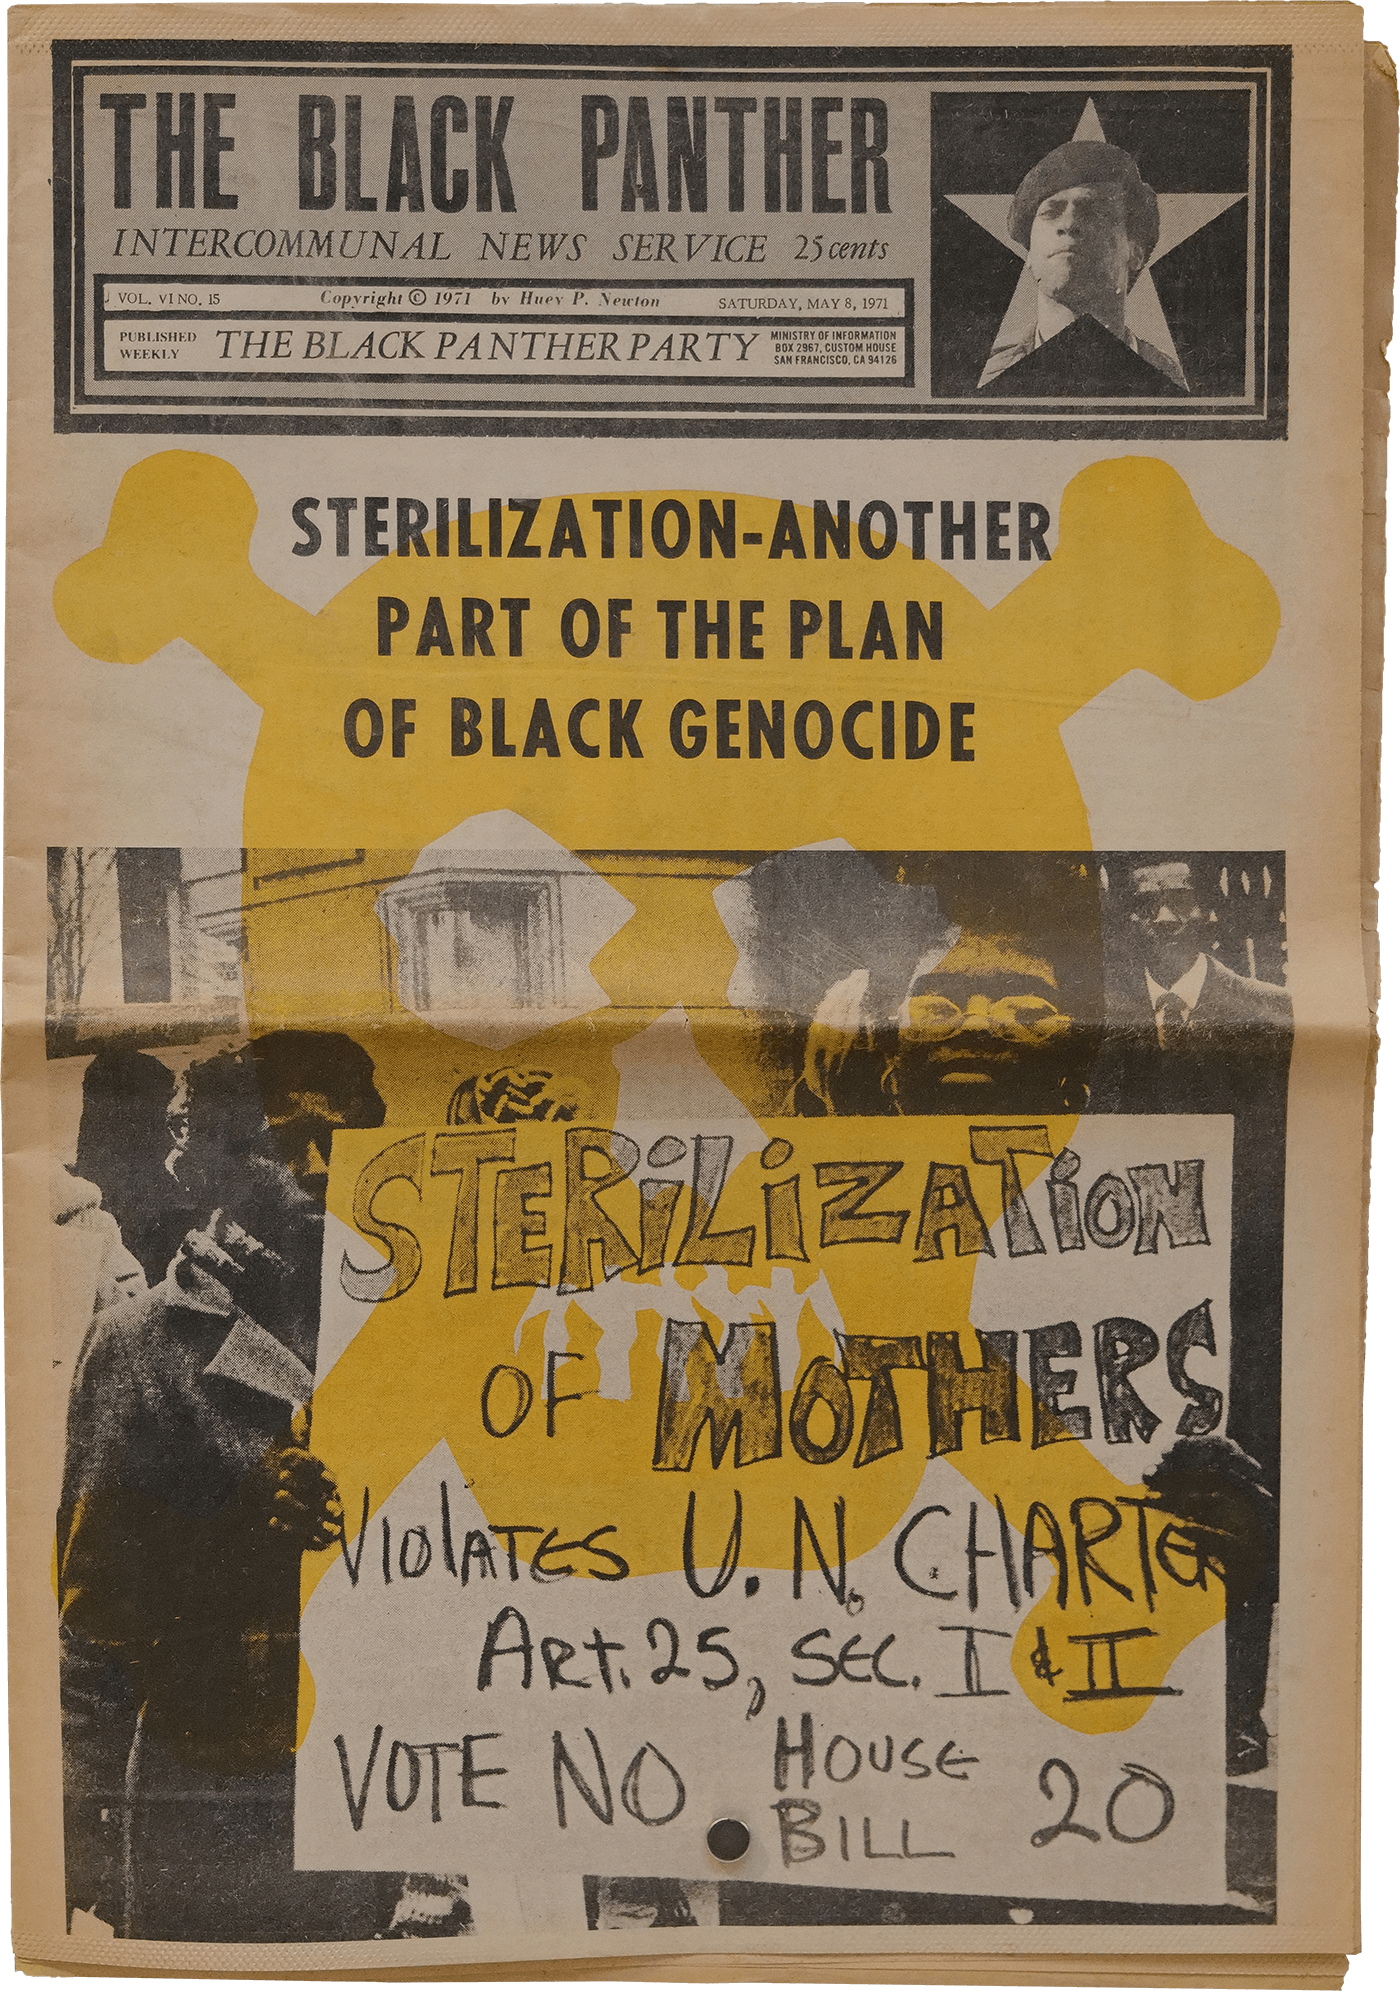 The Black Panther Newspaper (May 8, 1971)